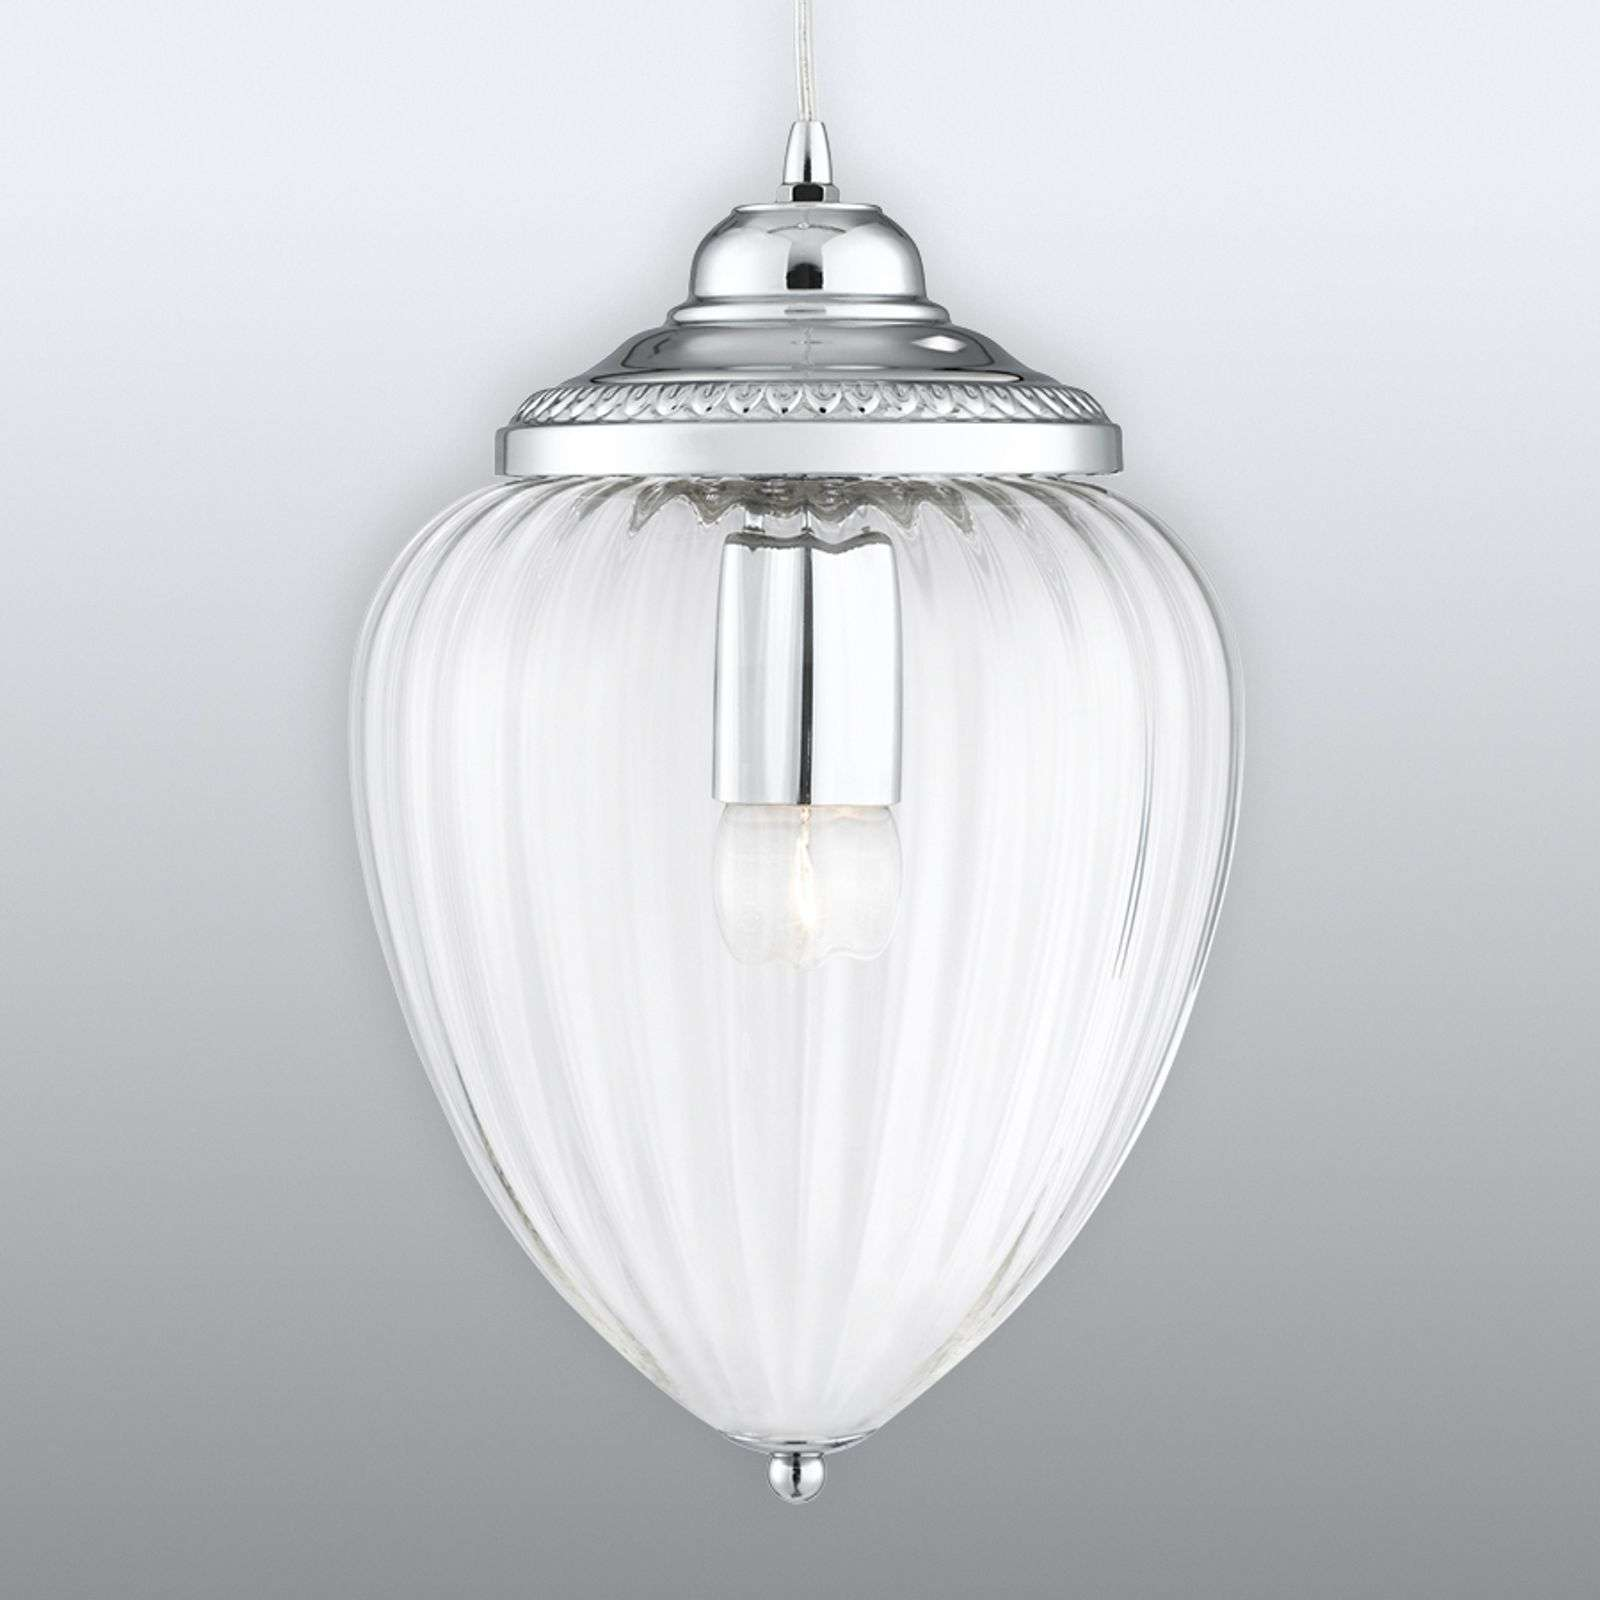 Suspension Pendants en verre avec des rainures